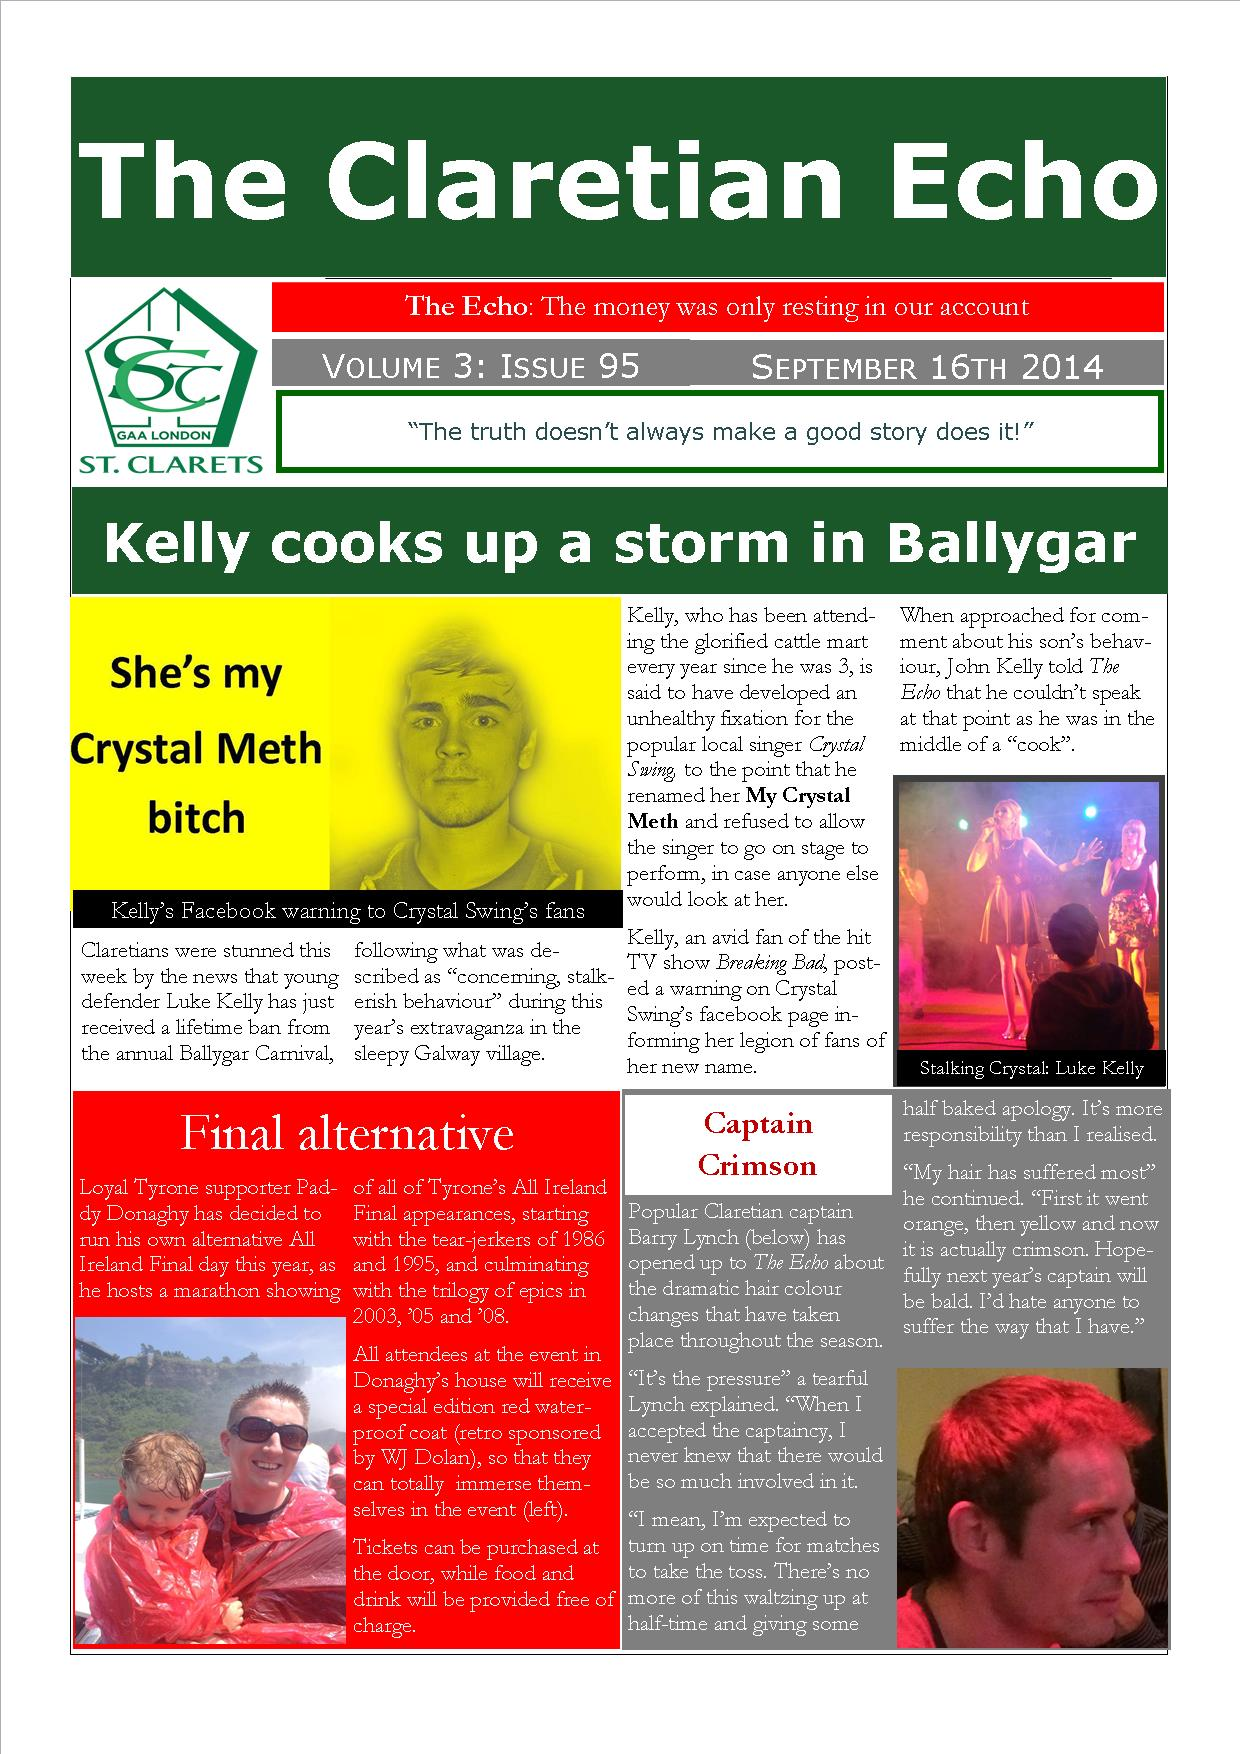 Claretian Echo Issue 95. The weekly newsletter from St Clarets GFC in London. London's best GAA club. A Gaelic football club to be proud of.